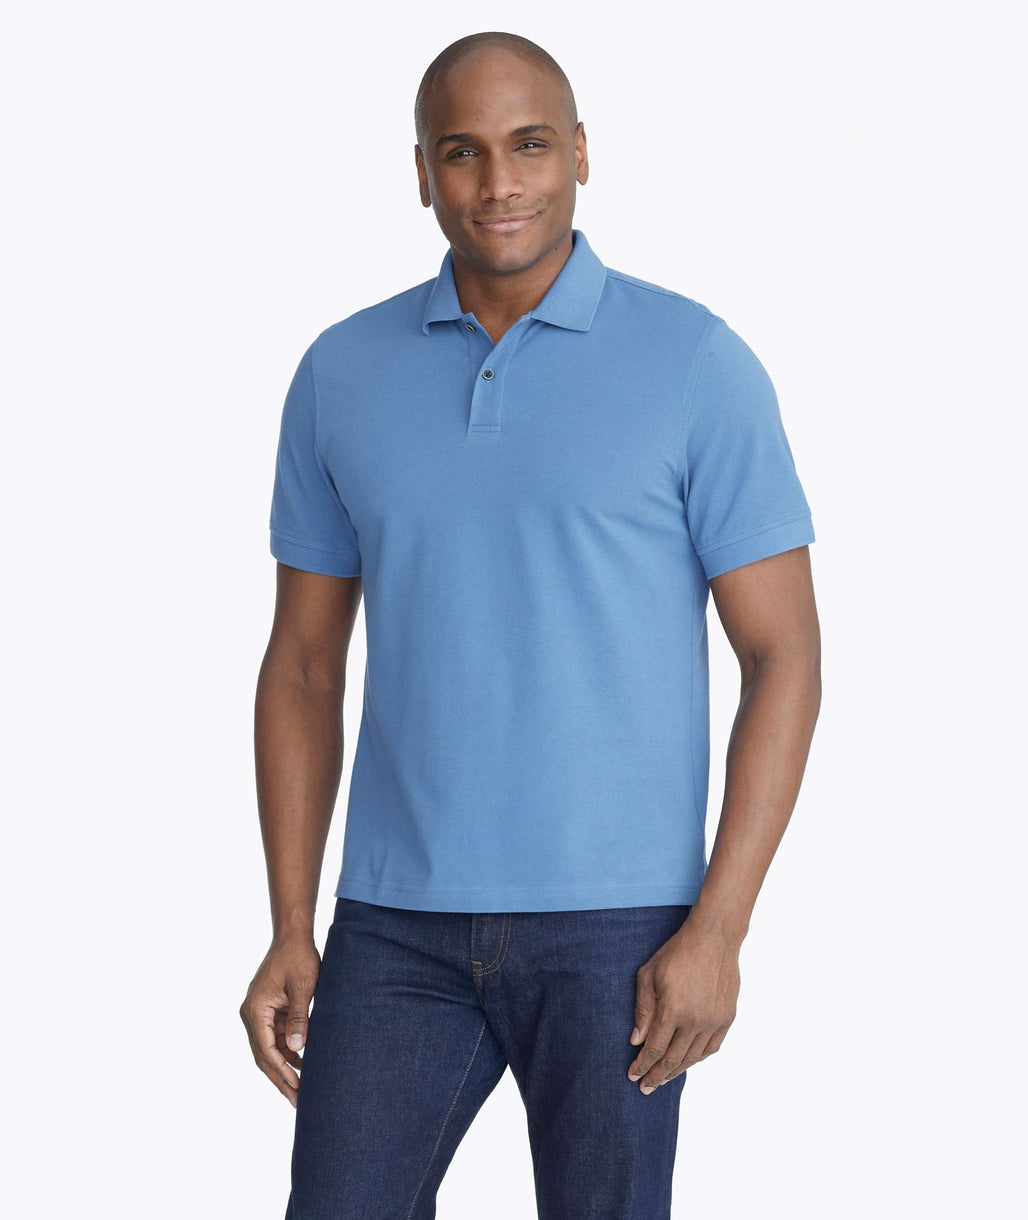 Model wearing a Dark Blue Classic Pique Polo